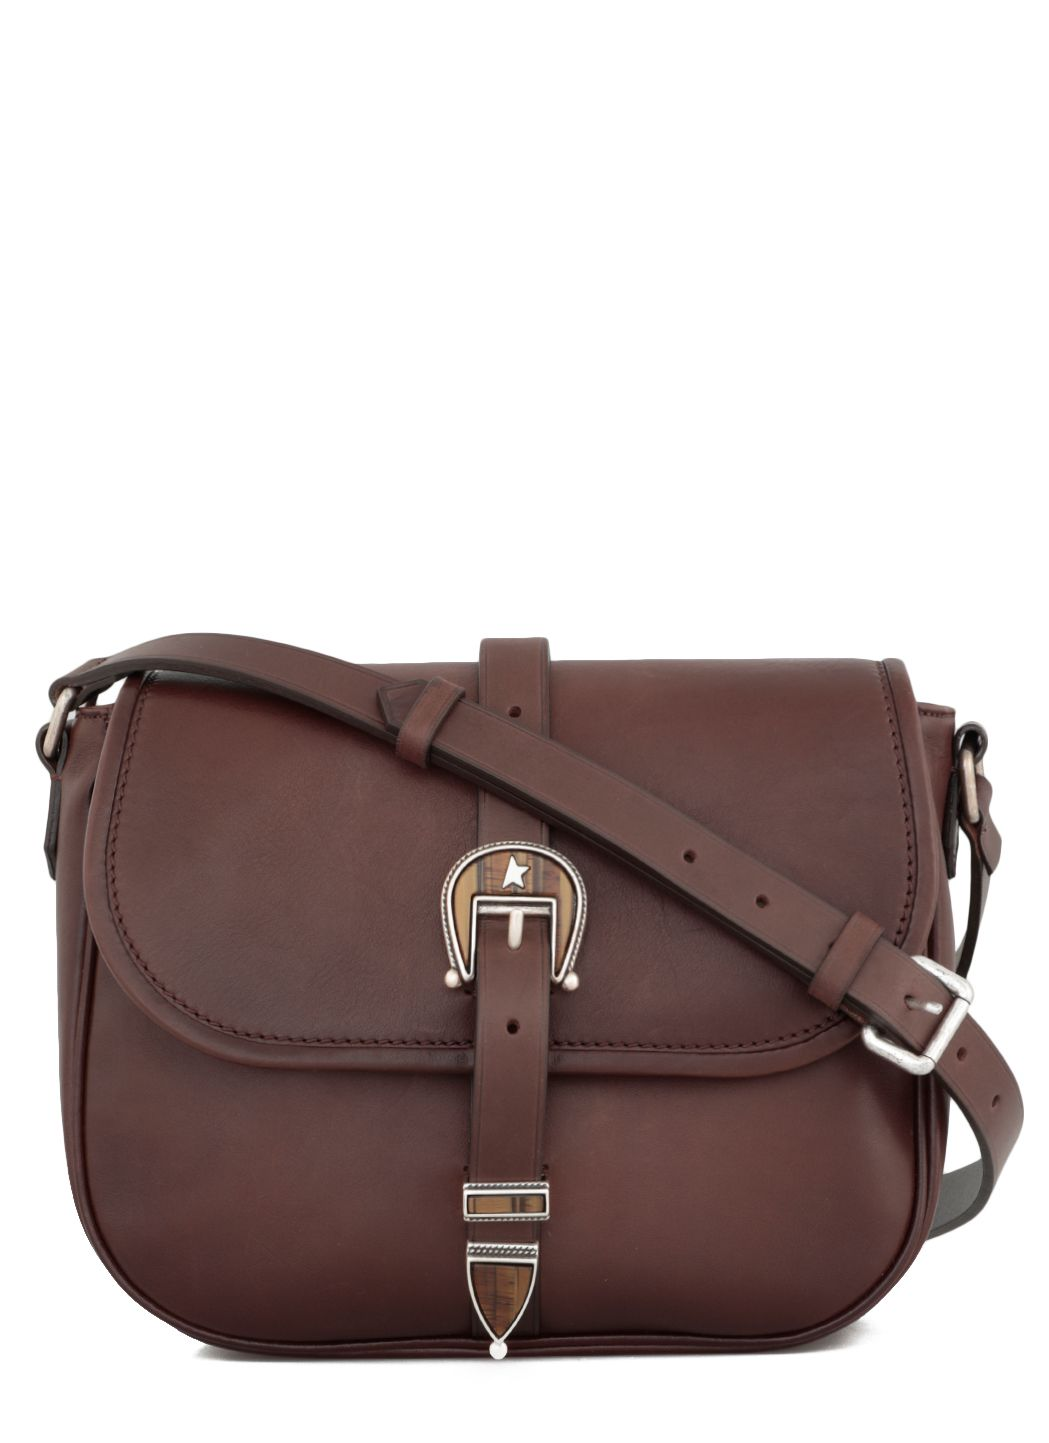 'Rodeo' Shoulder bag